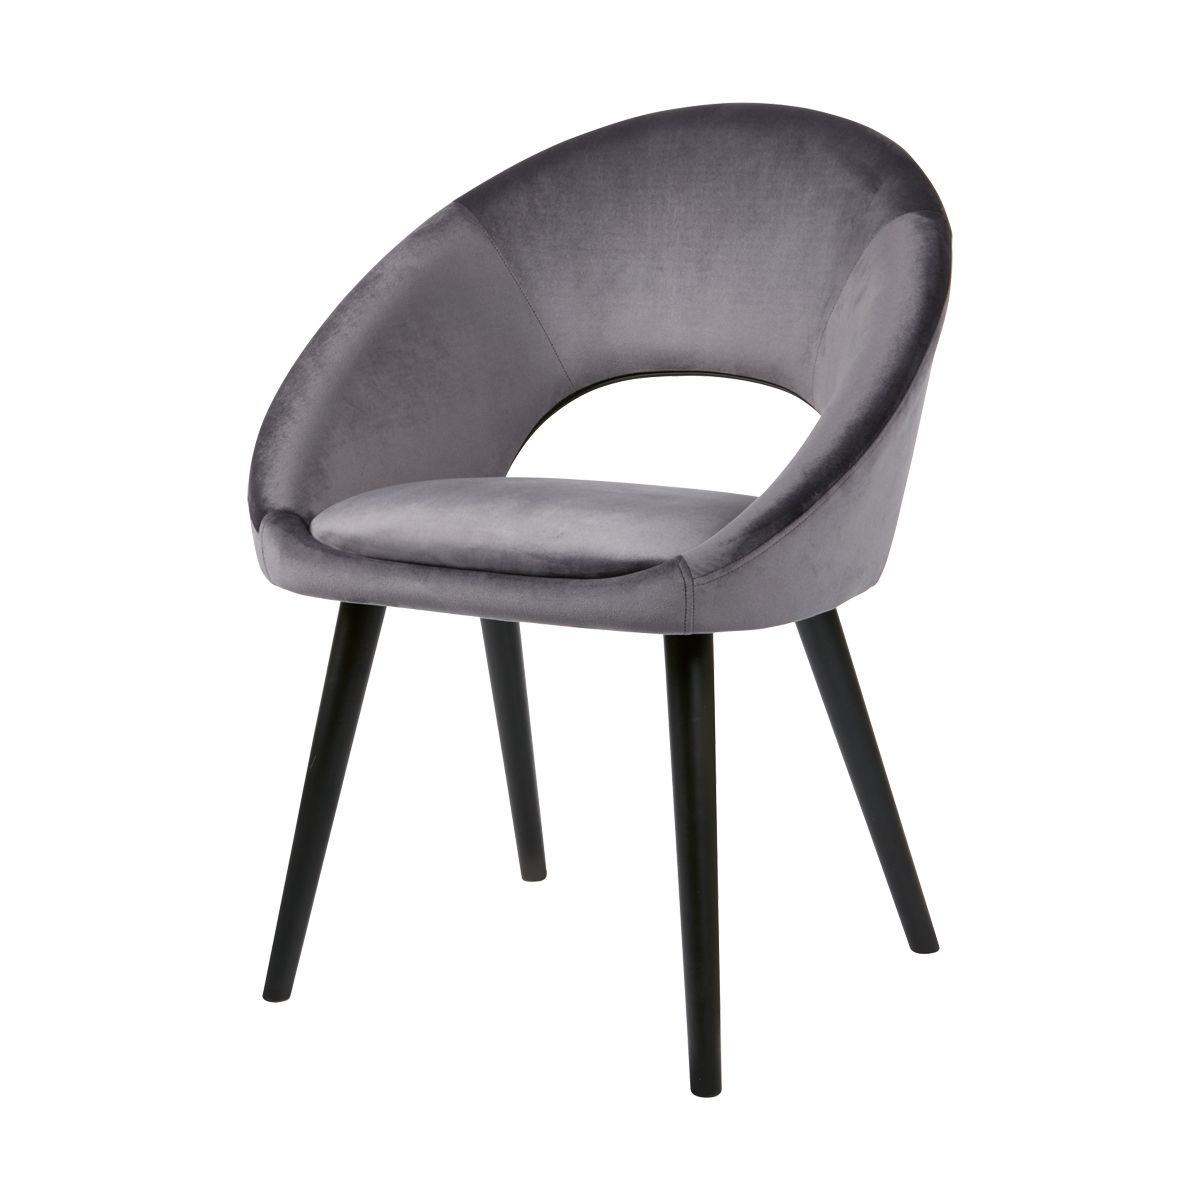 Grey Velvet Occasional Chair Kmart 49 Occasional Chairs